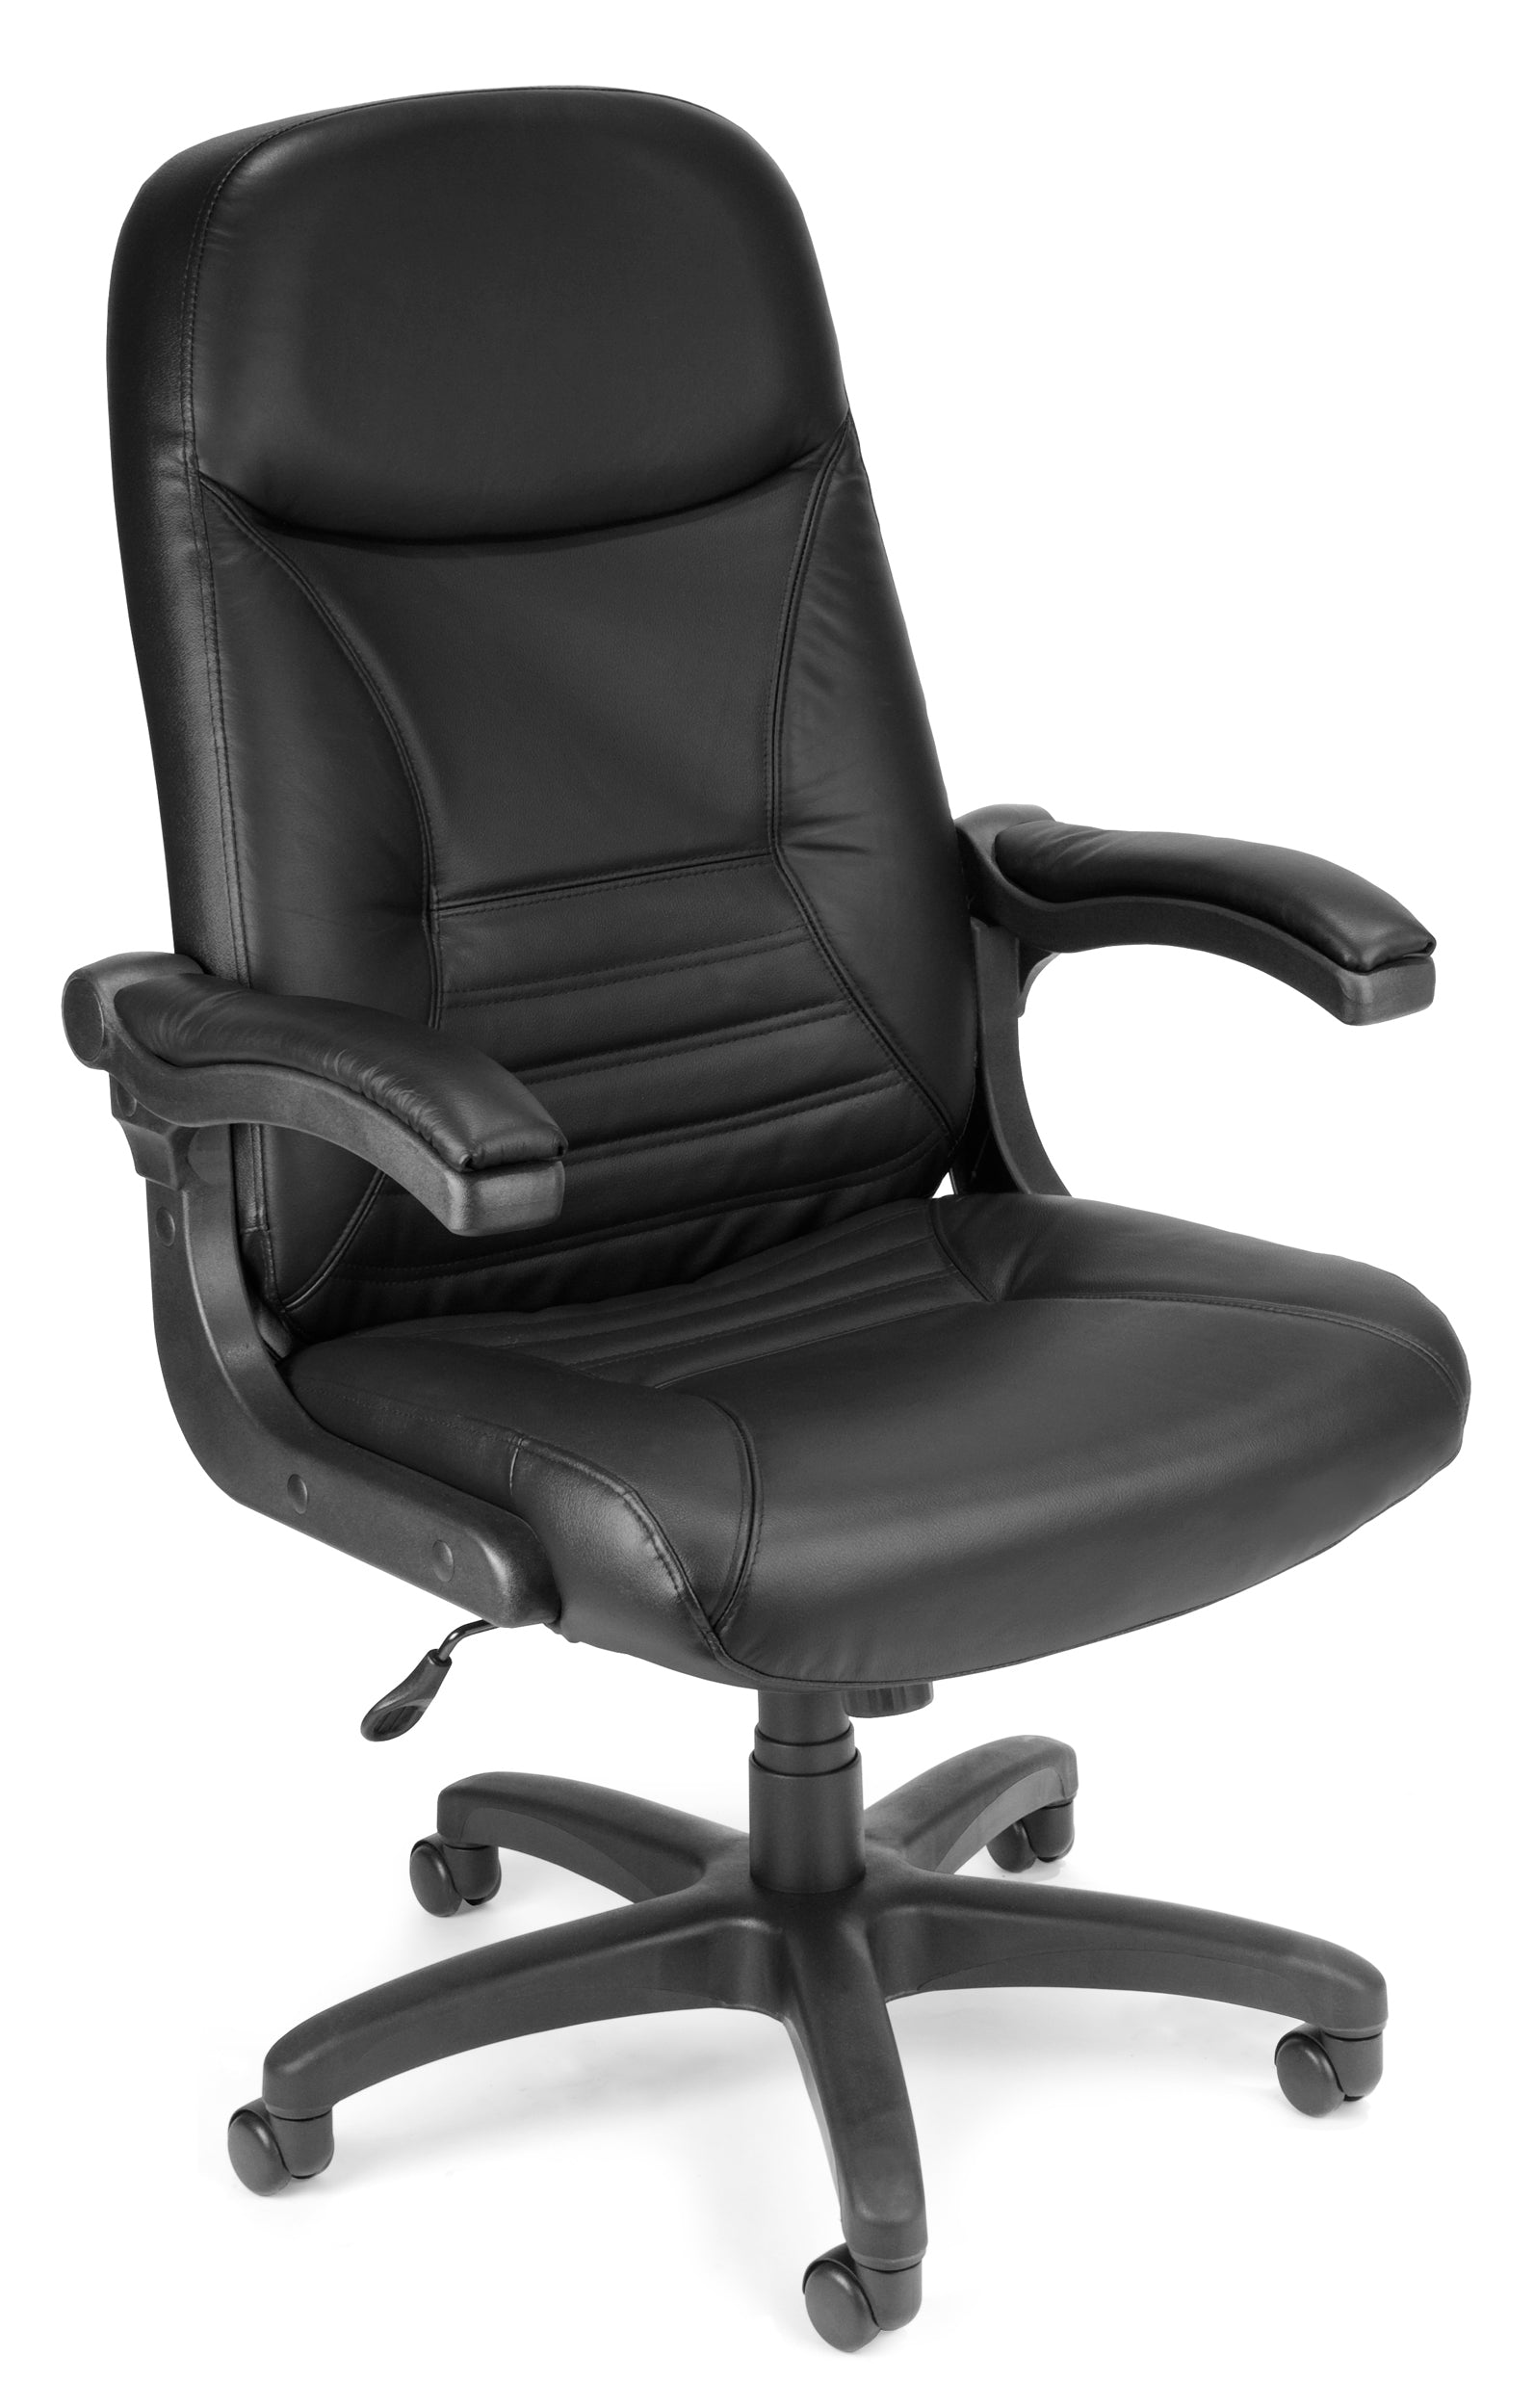 Model 550-L MobileArm Leather Executive Office Chair with Flip-Up Arms